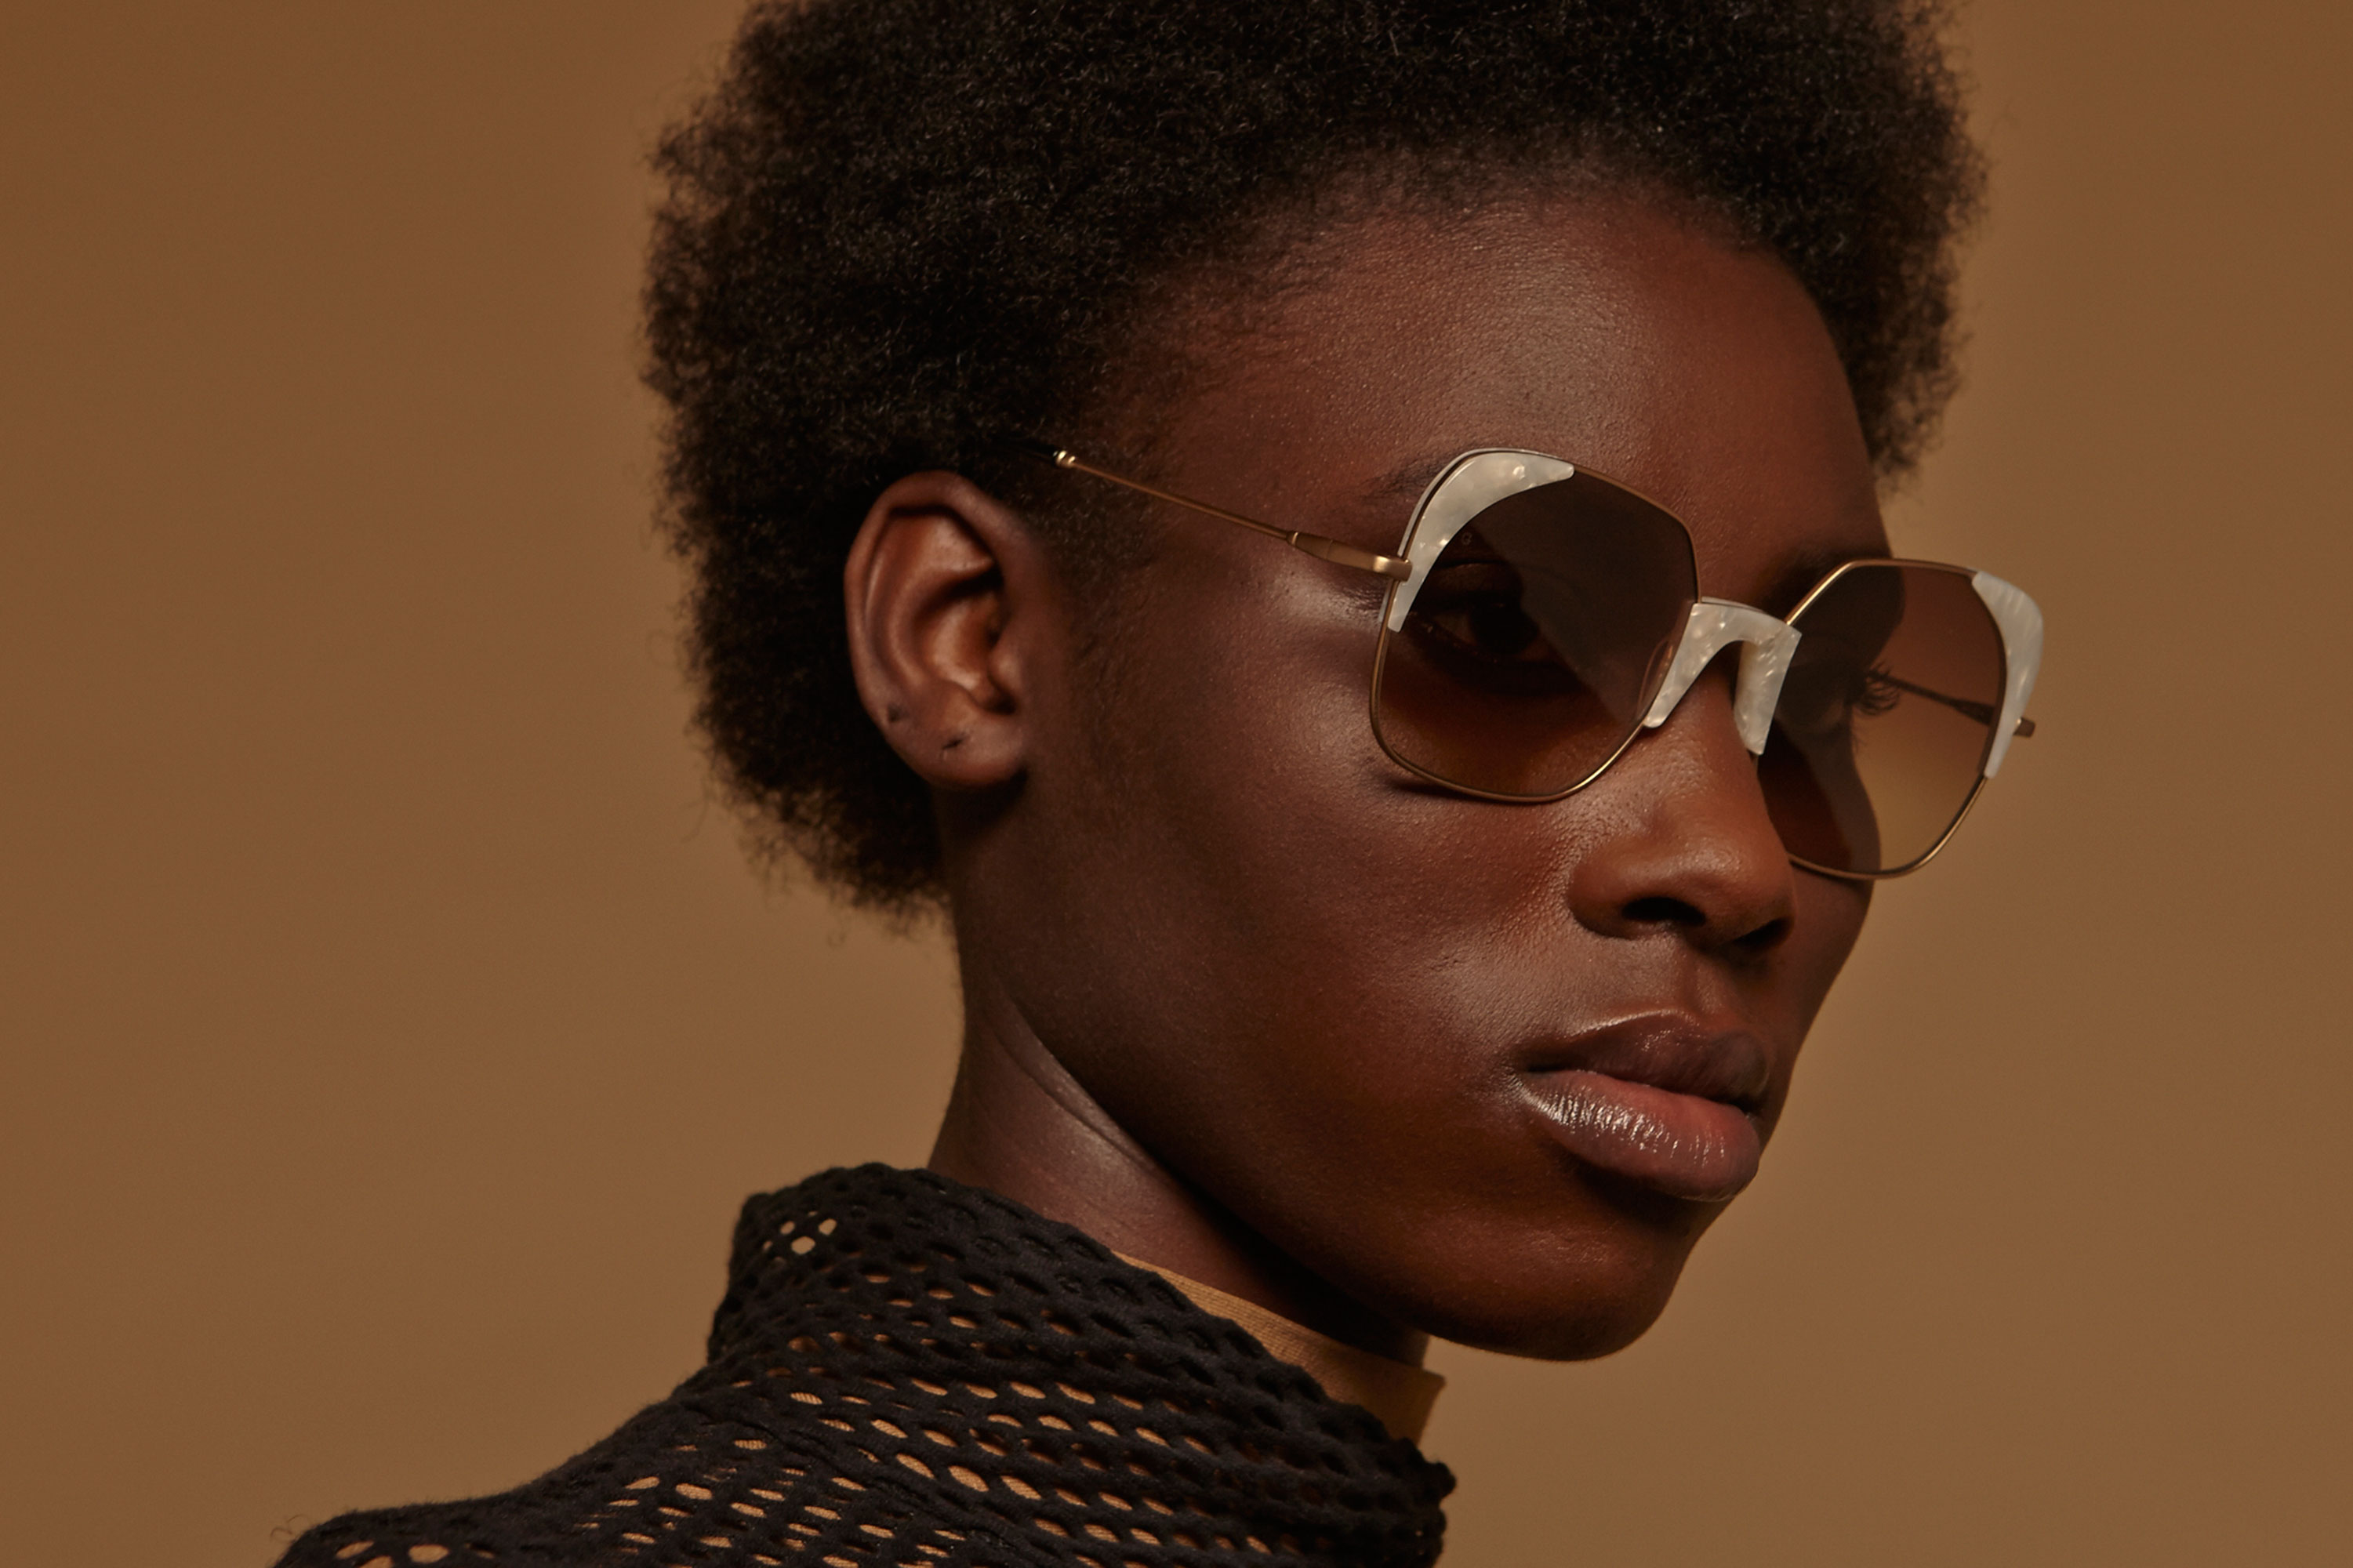 Adara acetate/metal squared white sunglasses by GIGI Studios